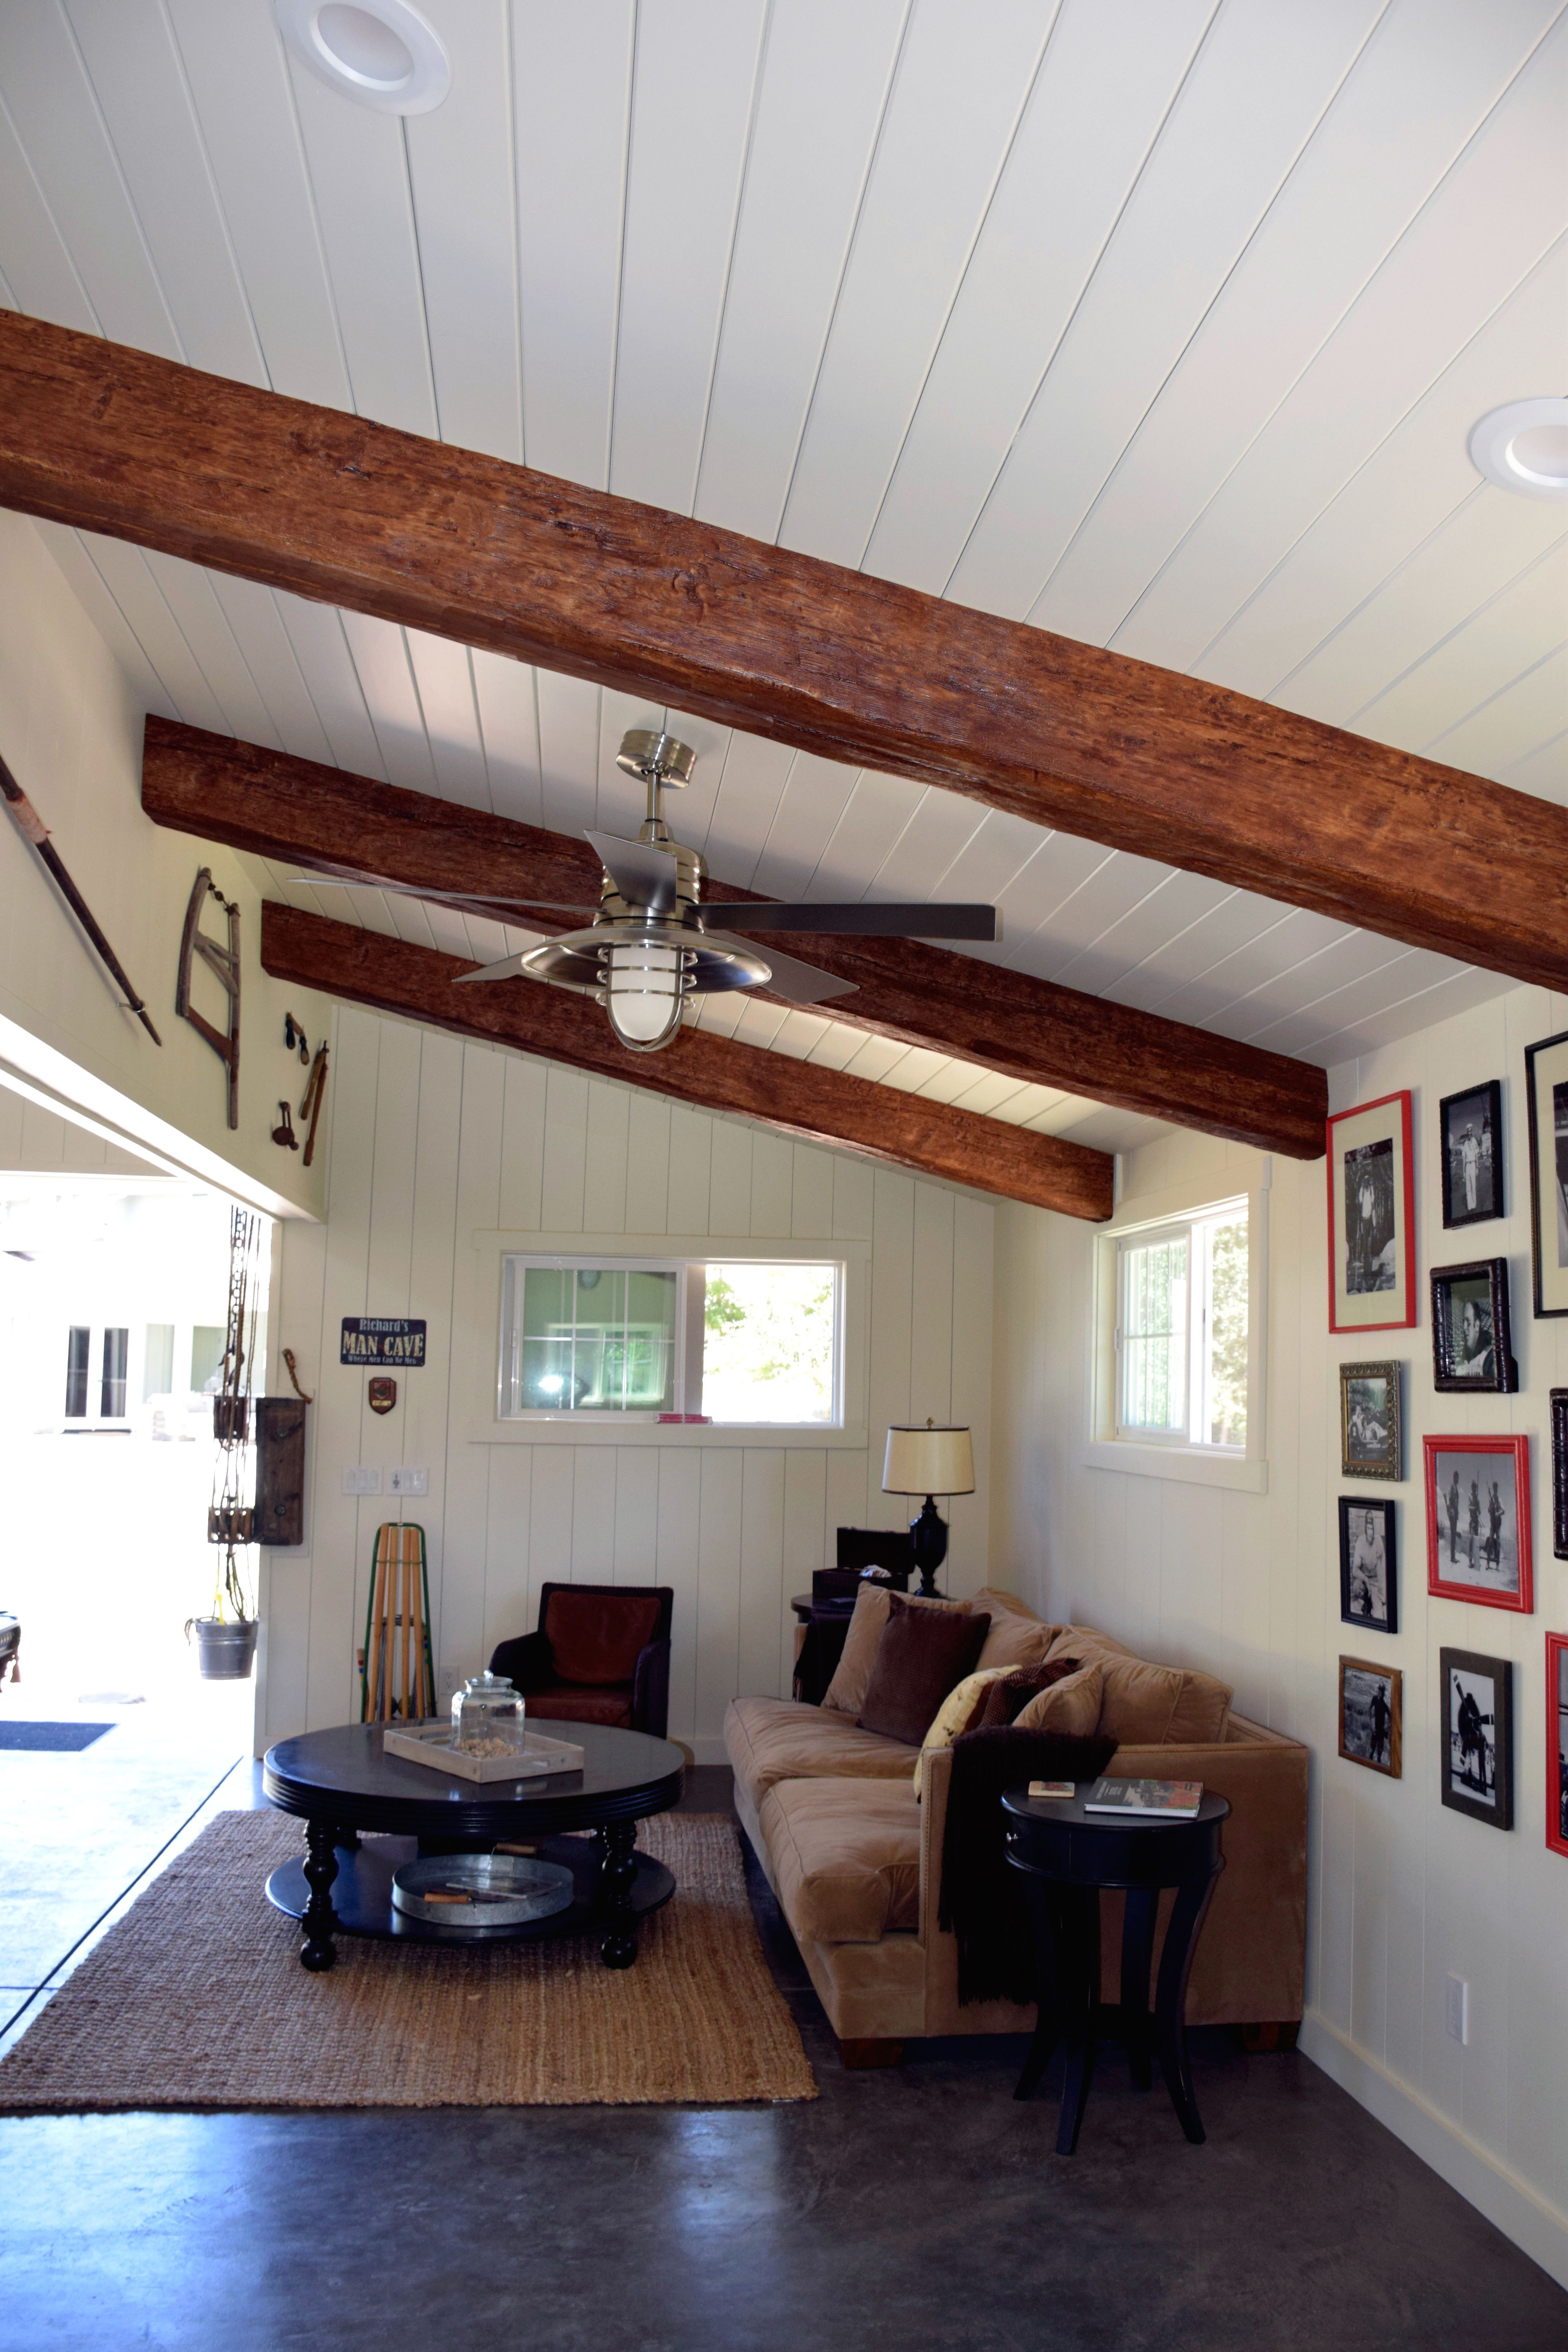 Instead Of Real Wood These Beams Are Made Of Lightweight Yet Durable Polyurethane Cus Beams Living Room Vaulted Ceiling Living Room Ceiling Beams Living Room